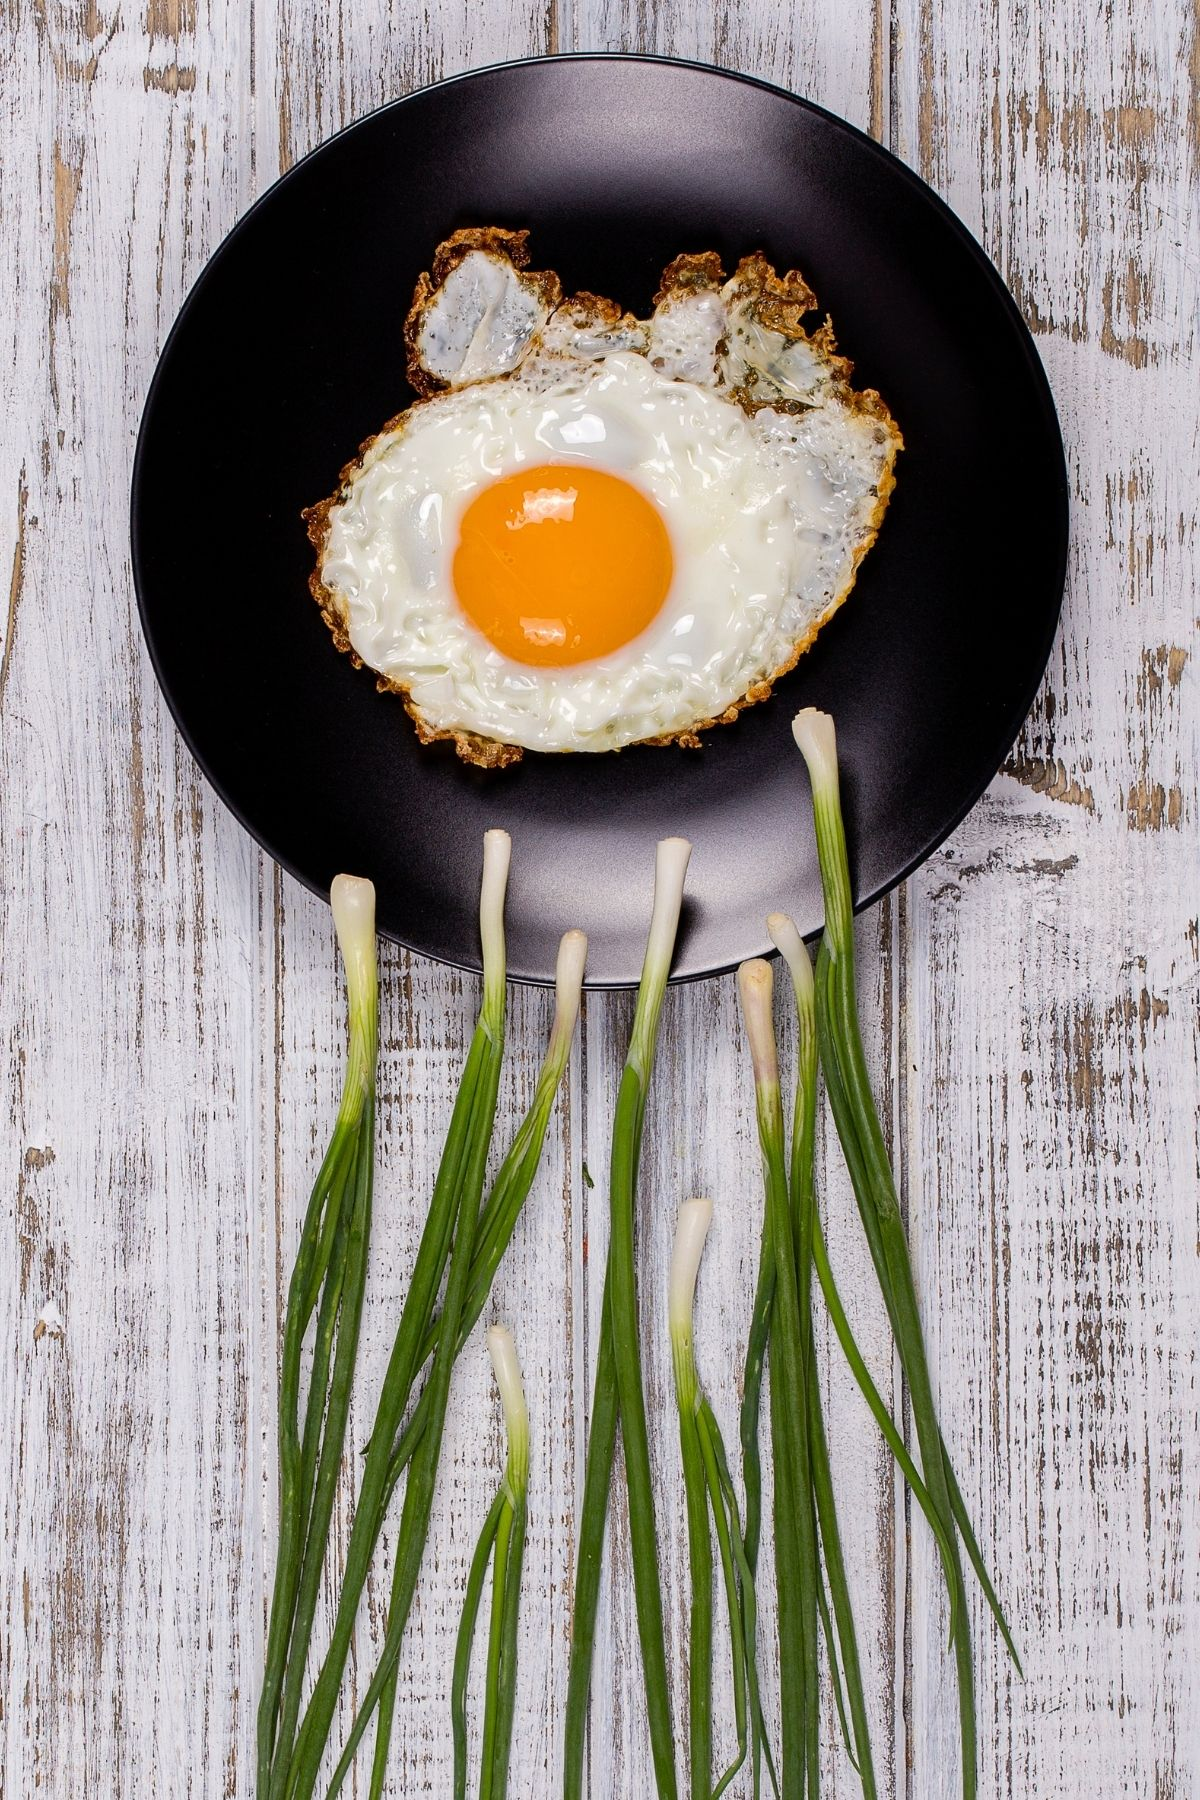 Green onions form the appearance of sperm swimming towards a skillet with fried egg inside.